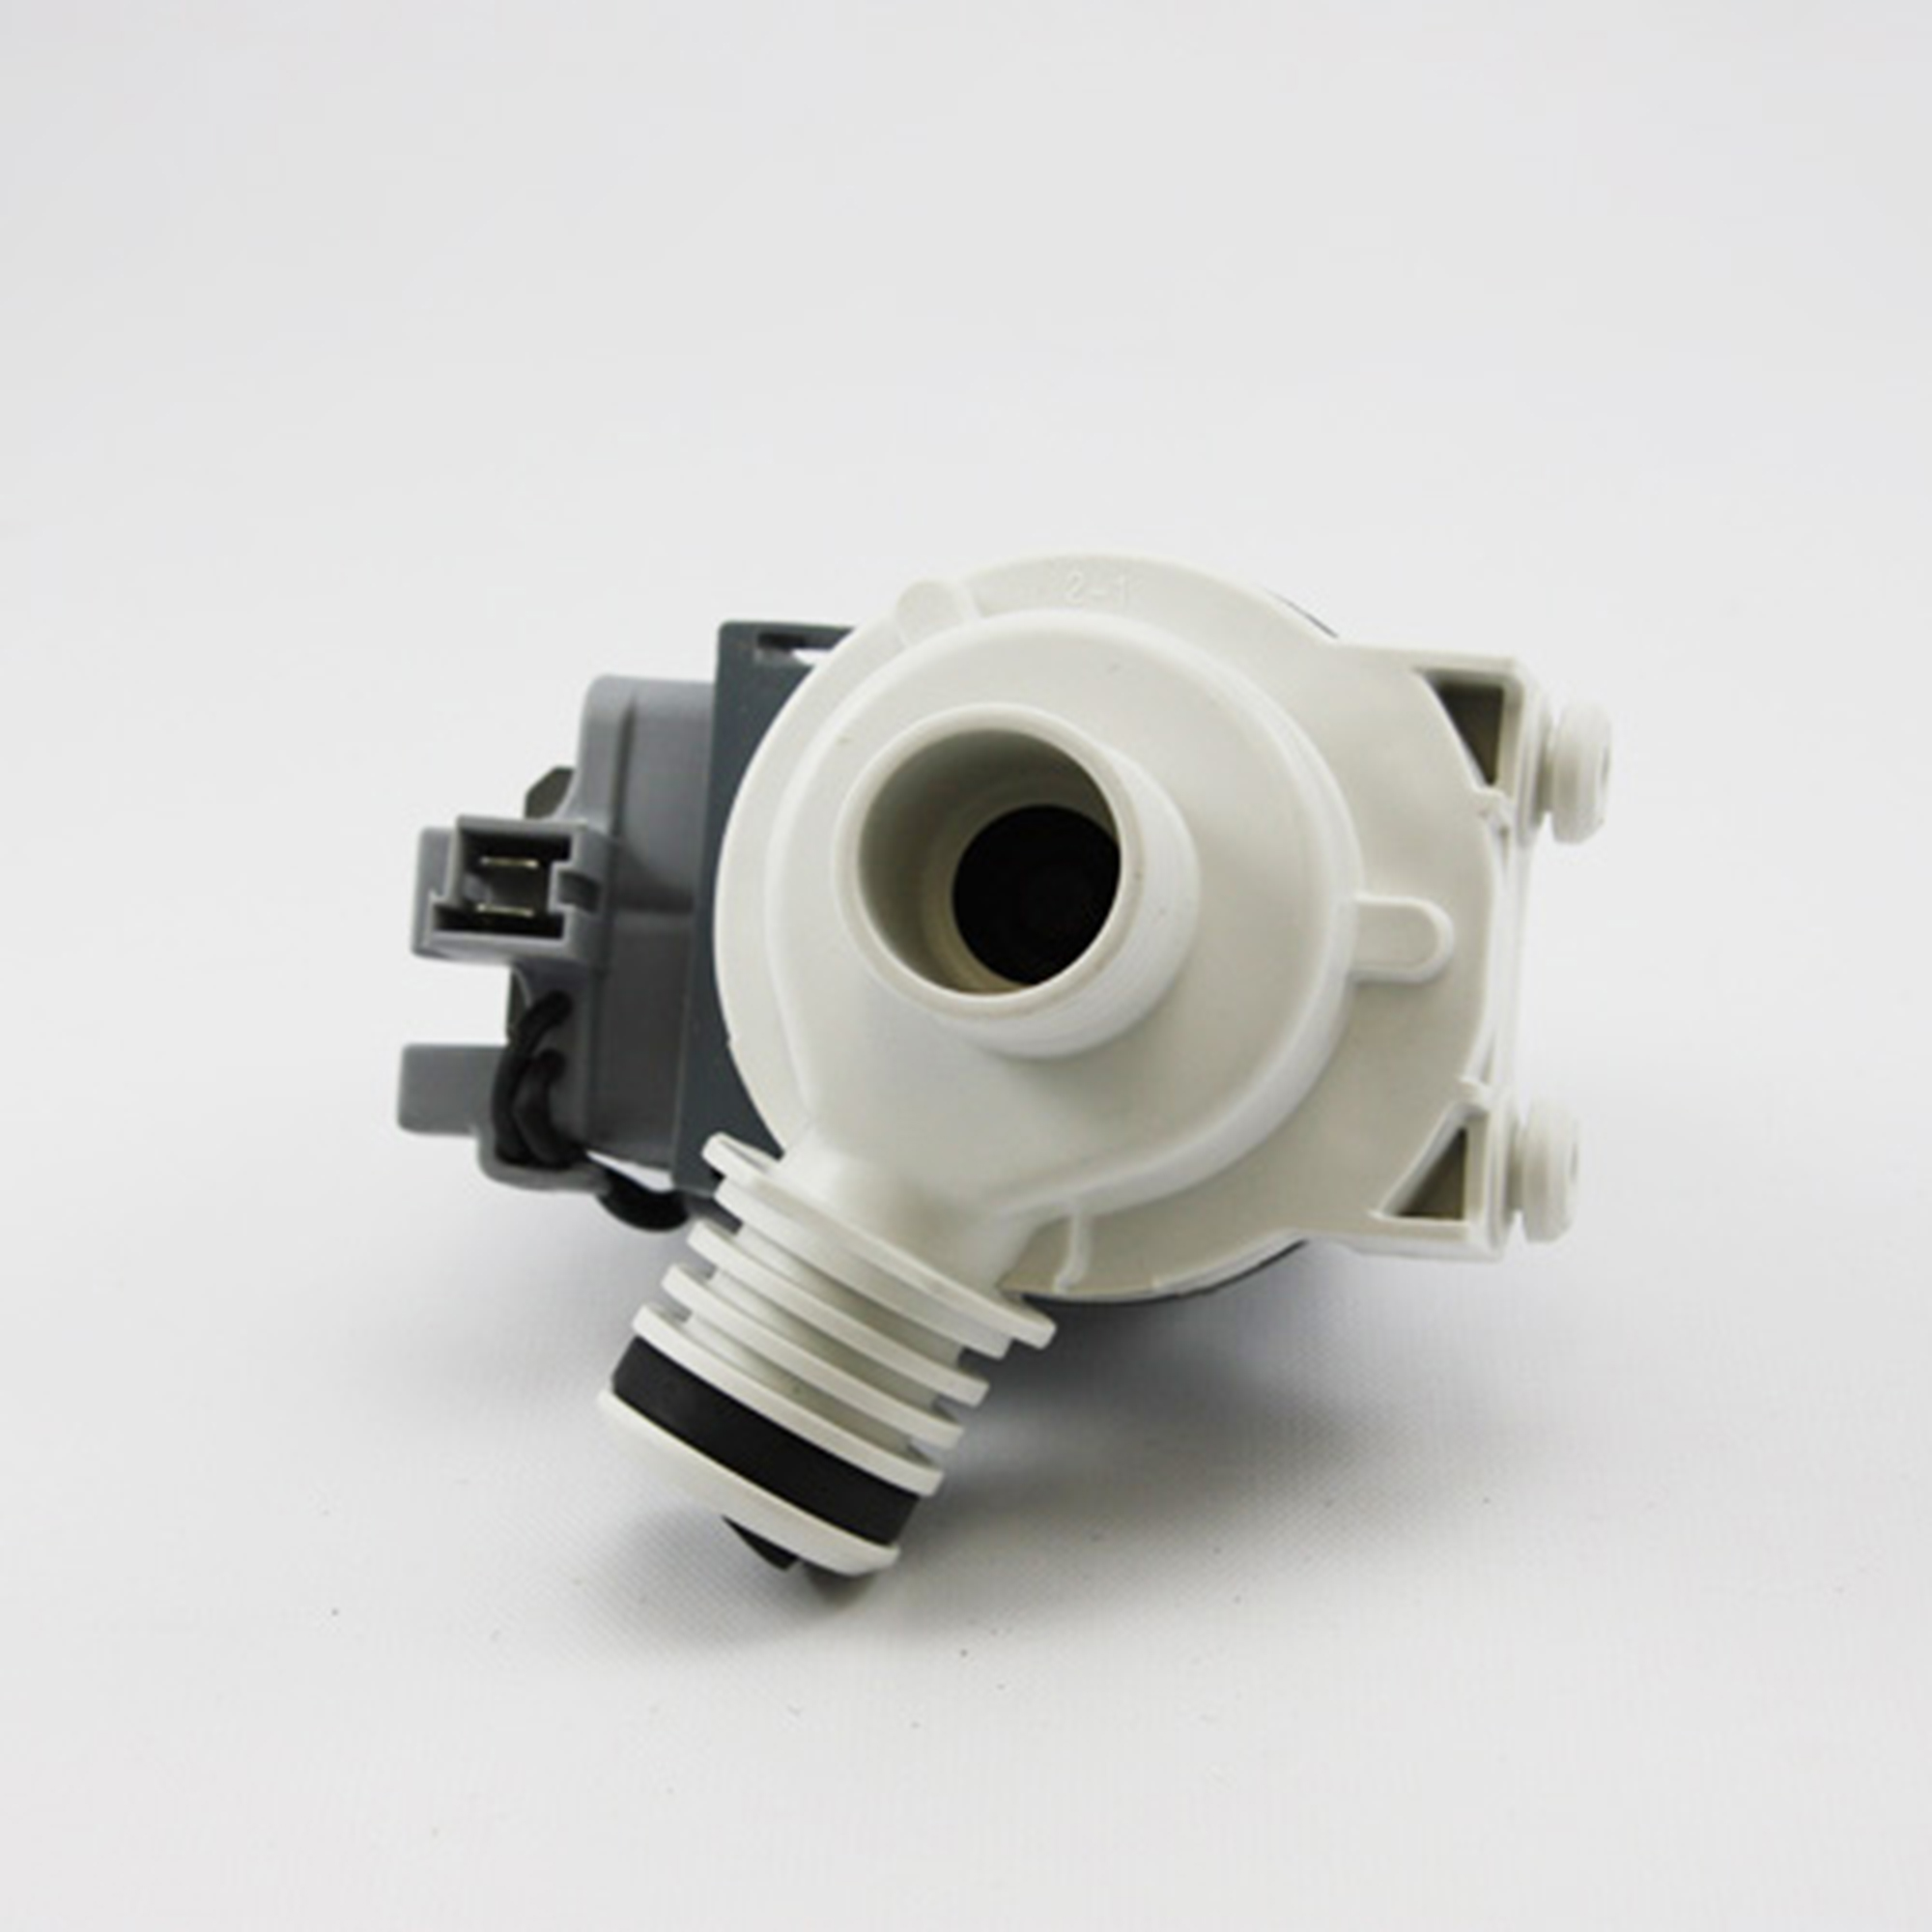 Er22003059 for 22003059 washing machine drain pump and for Washing machine pump motor